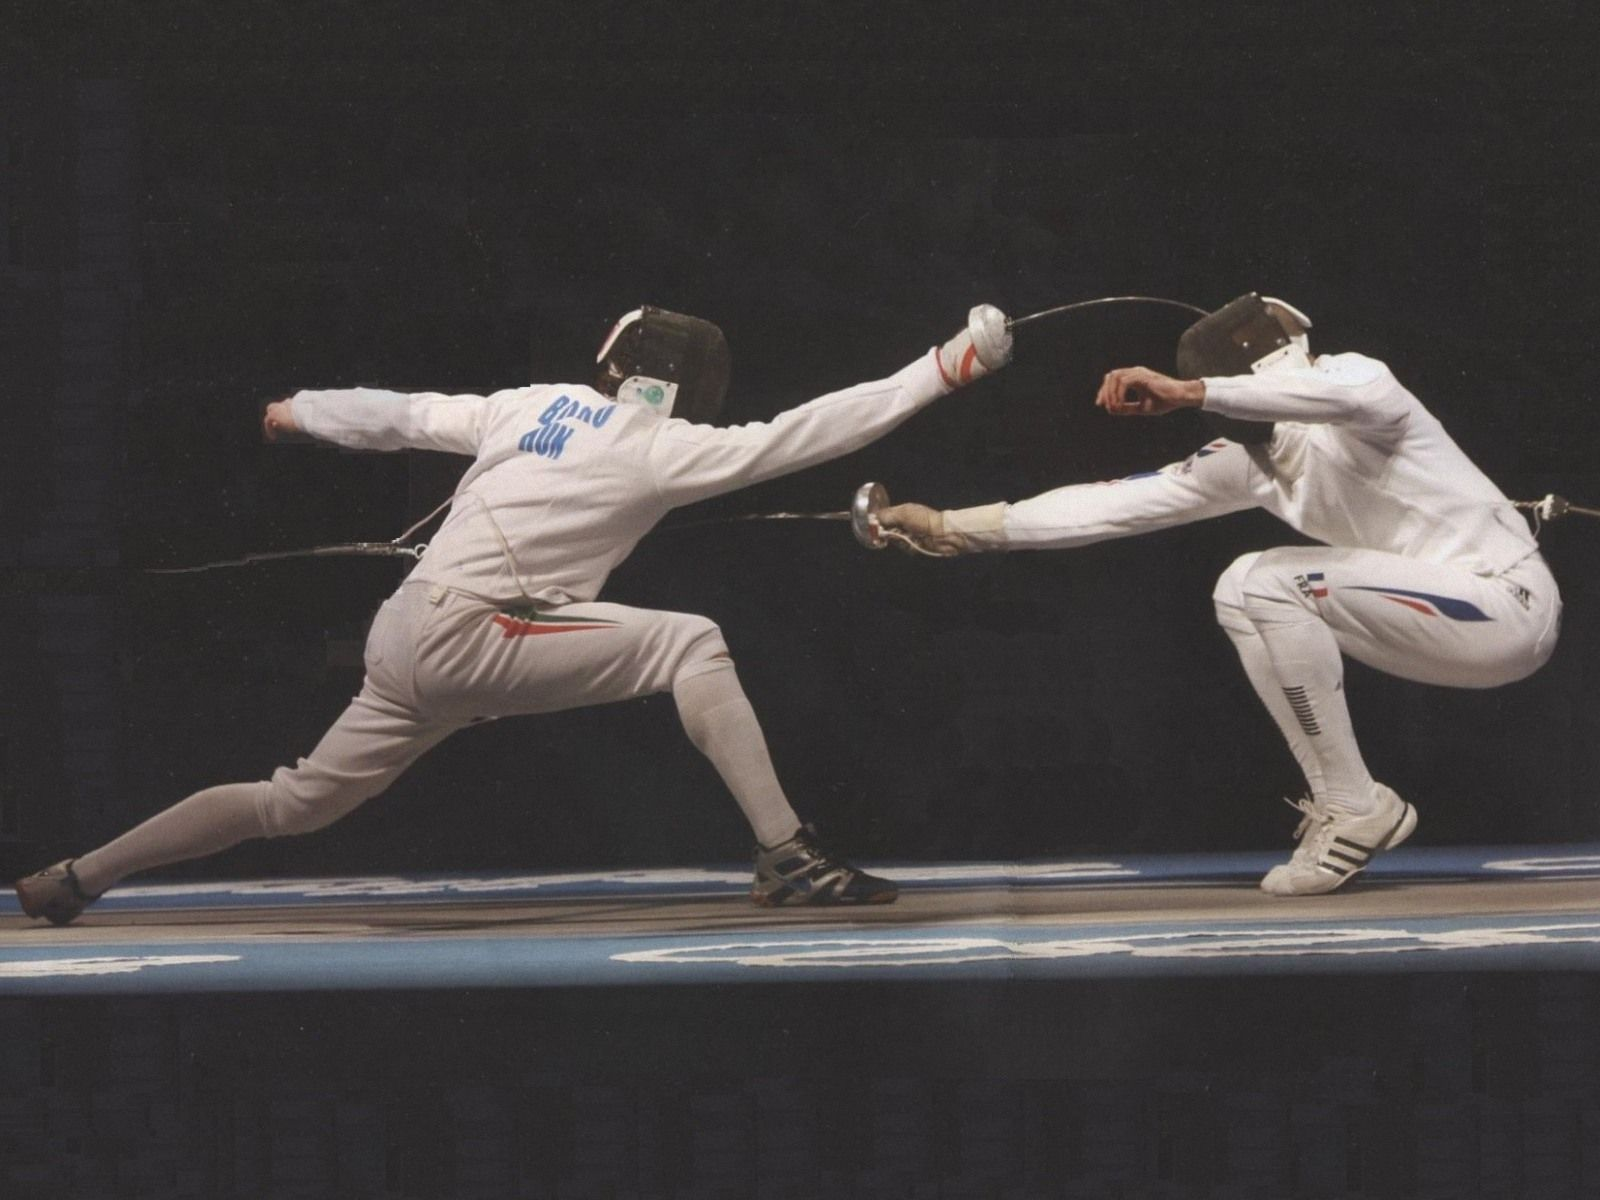 Amazing Fencing Wallpaper - 4a256bb82c275a1e7751151e2b4a4185  You Should Have_65117.jpg